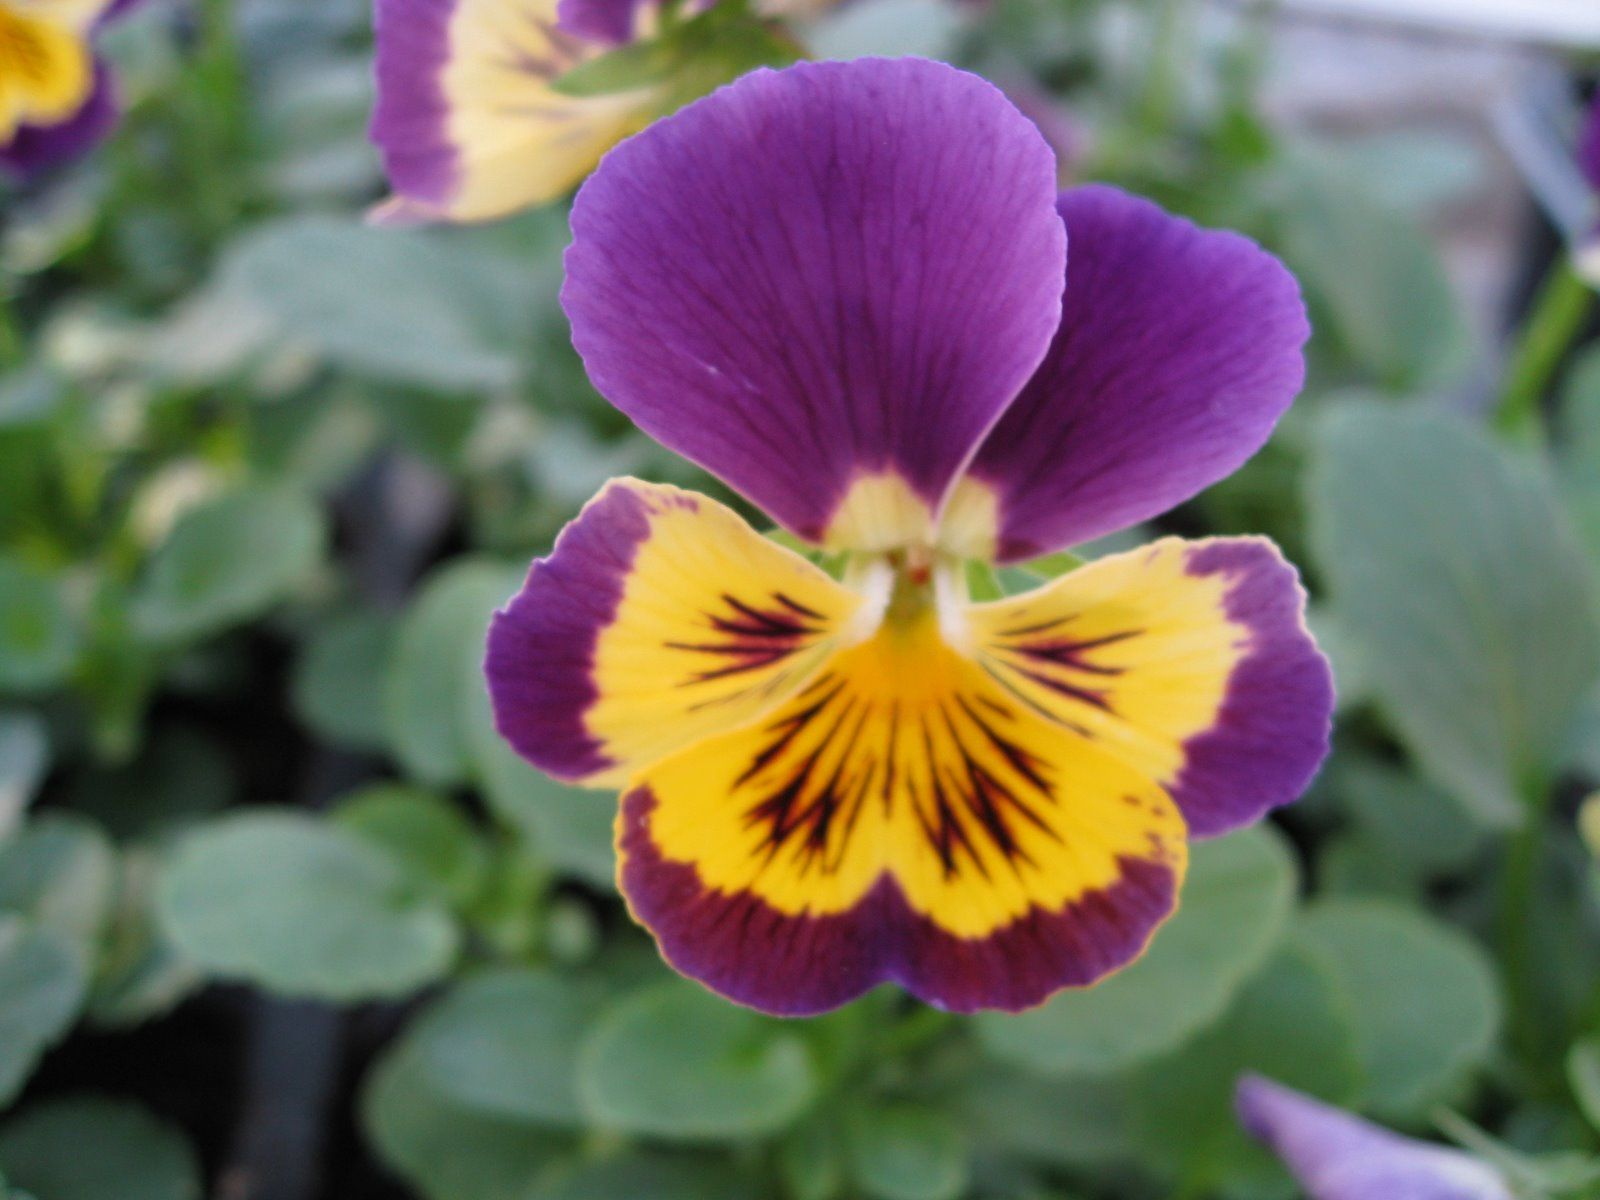 One of my simple little favorites viola pansey violet yellow one of my simple little favorites viola pansey violet yellow viola pansey is mightylinksfo Images